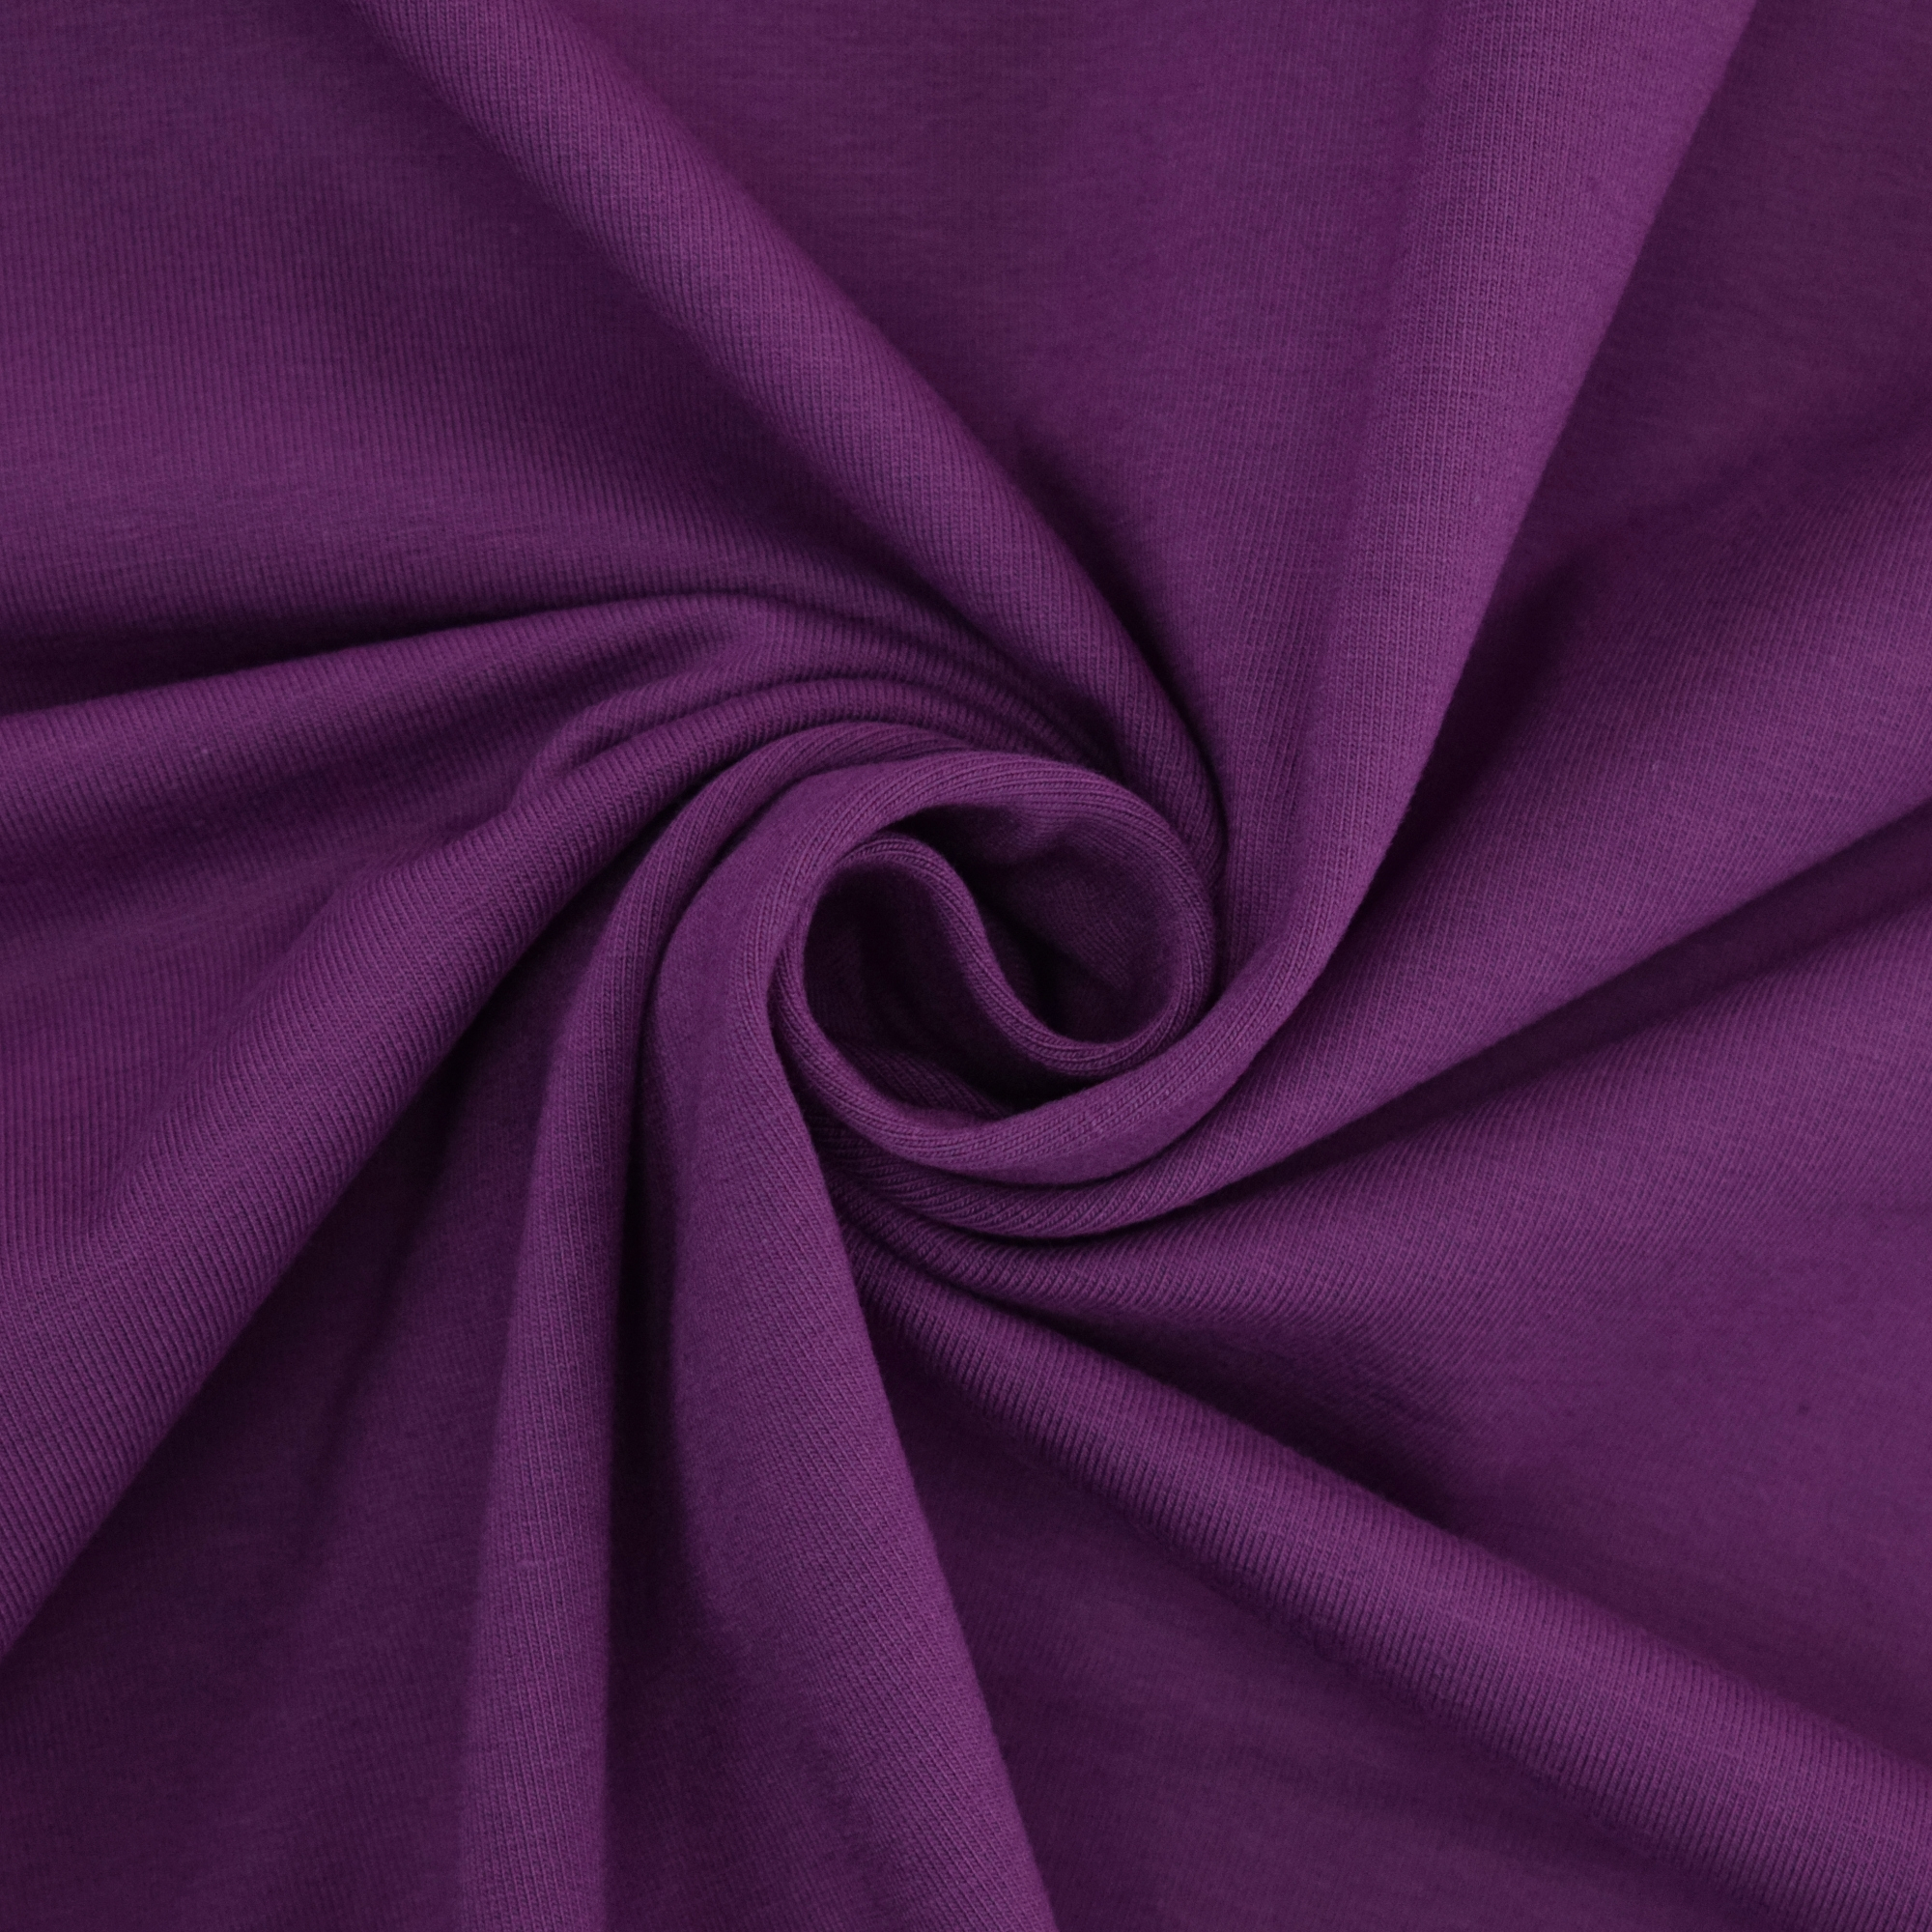 Cotton jersey plain, purple | 455.421-3205 | violett